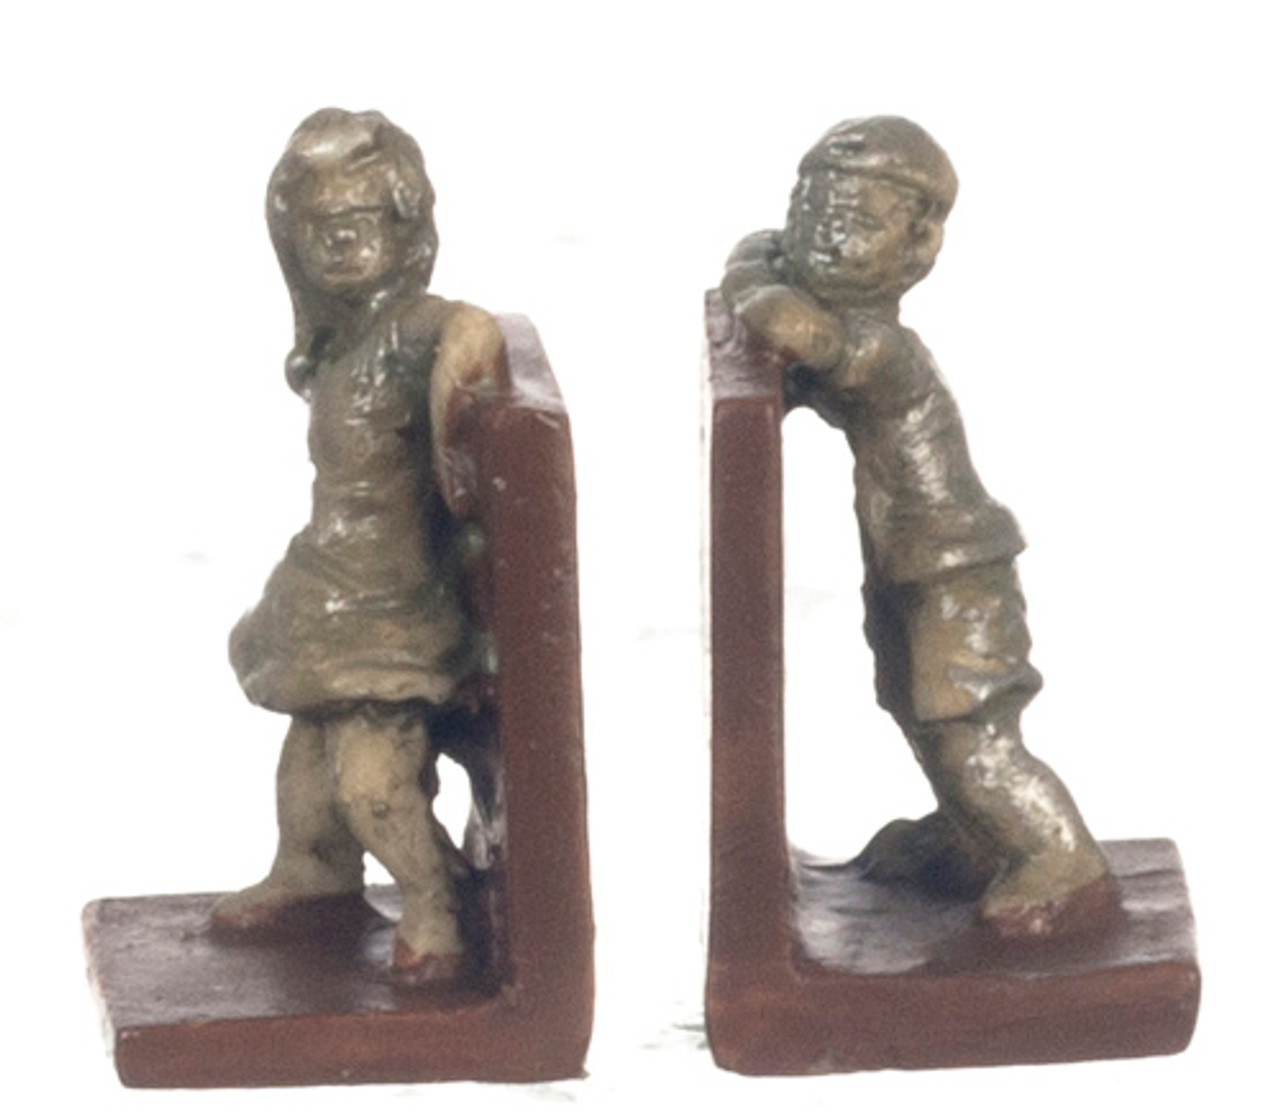 Dollhouse City - Dollhouse Miniatures Bookends Hide and Seek - Silver